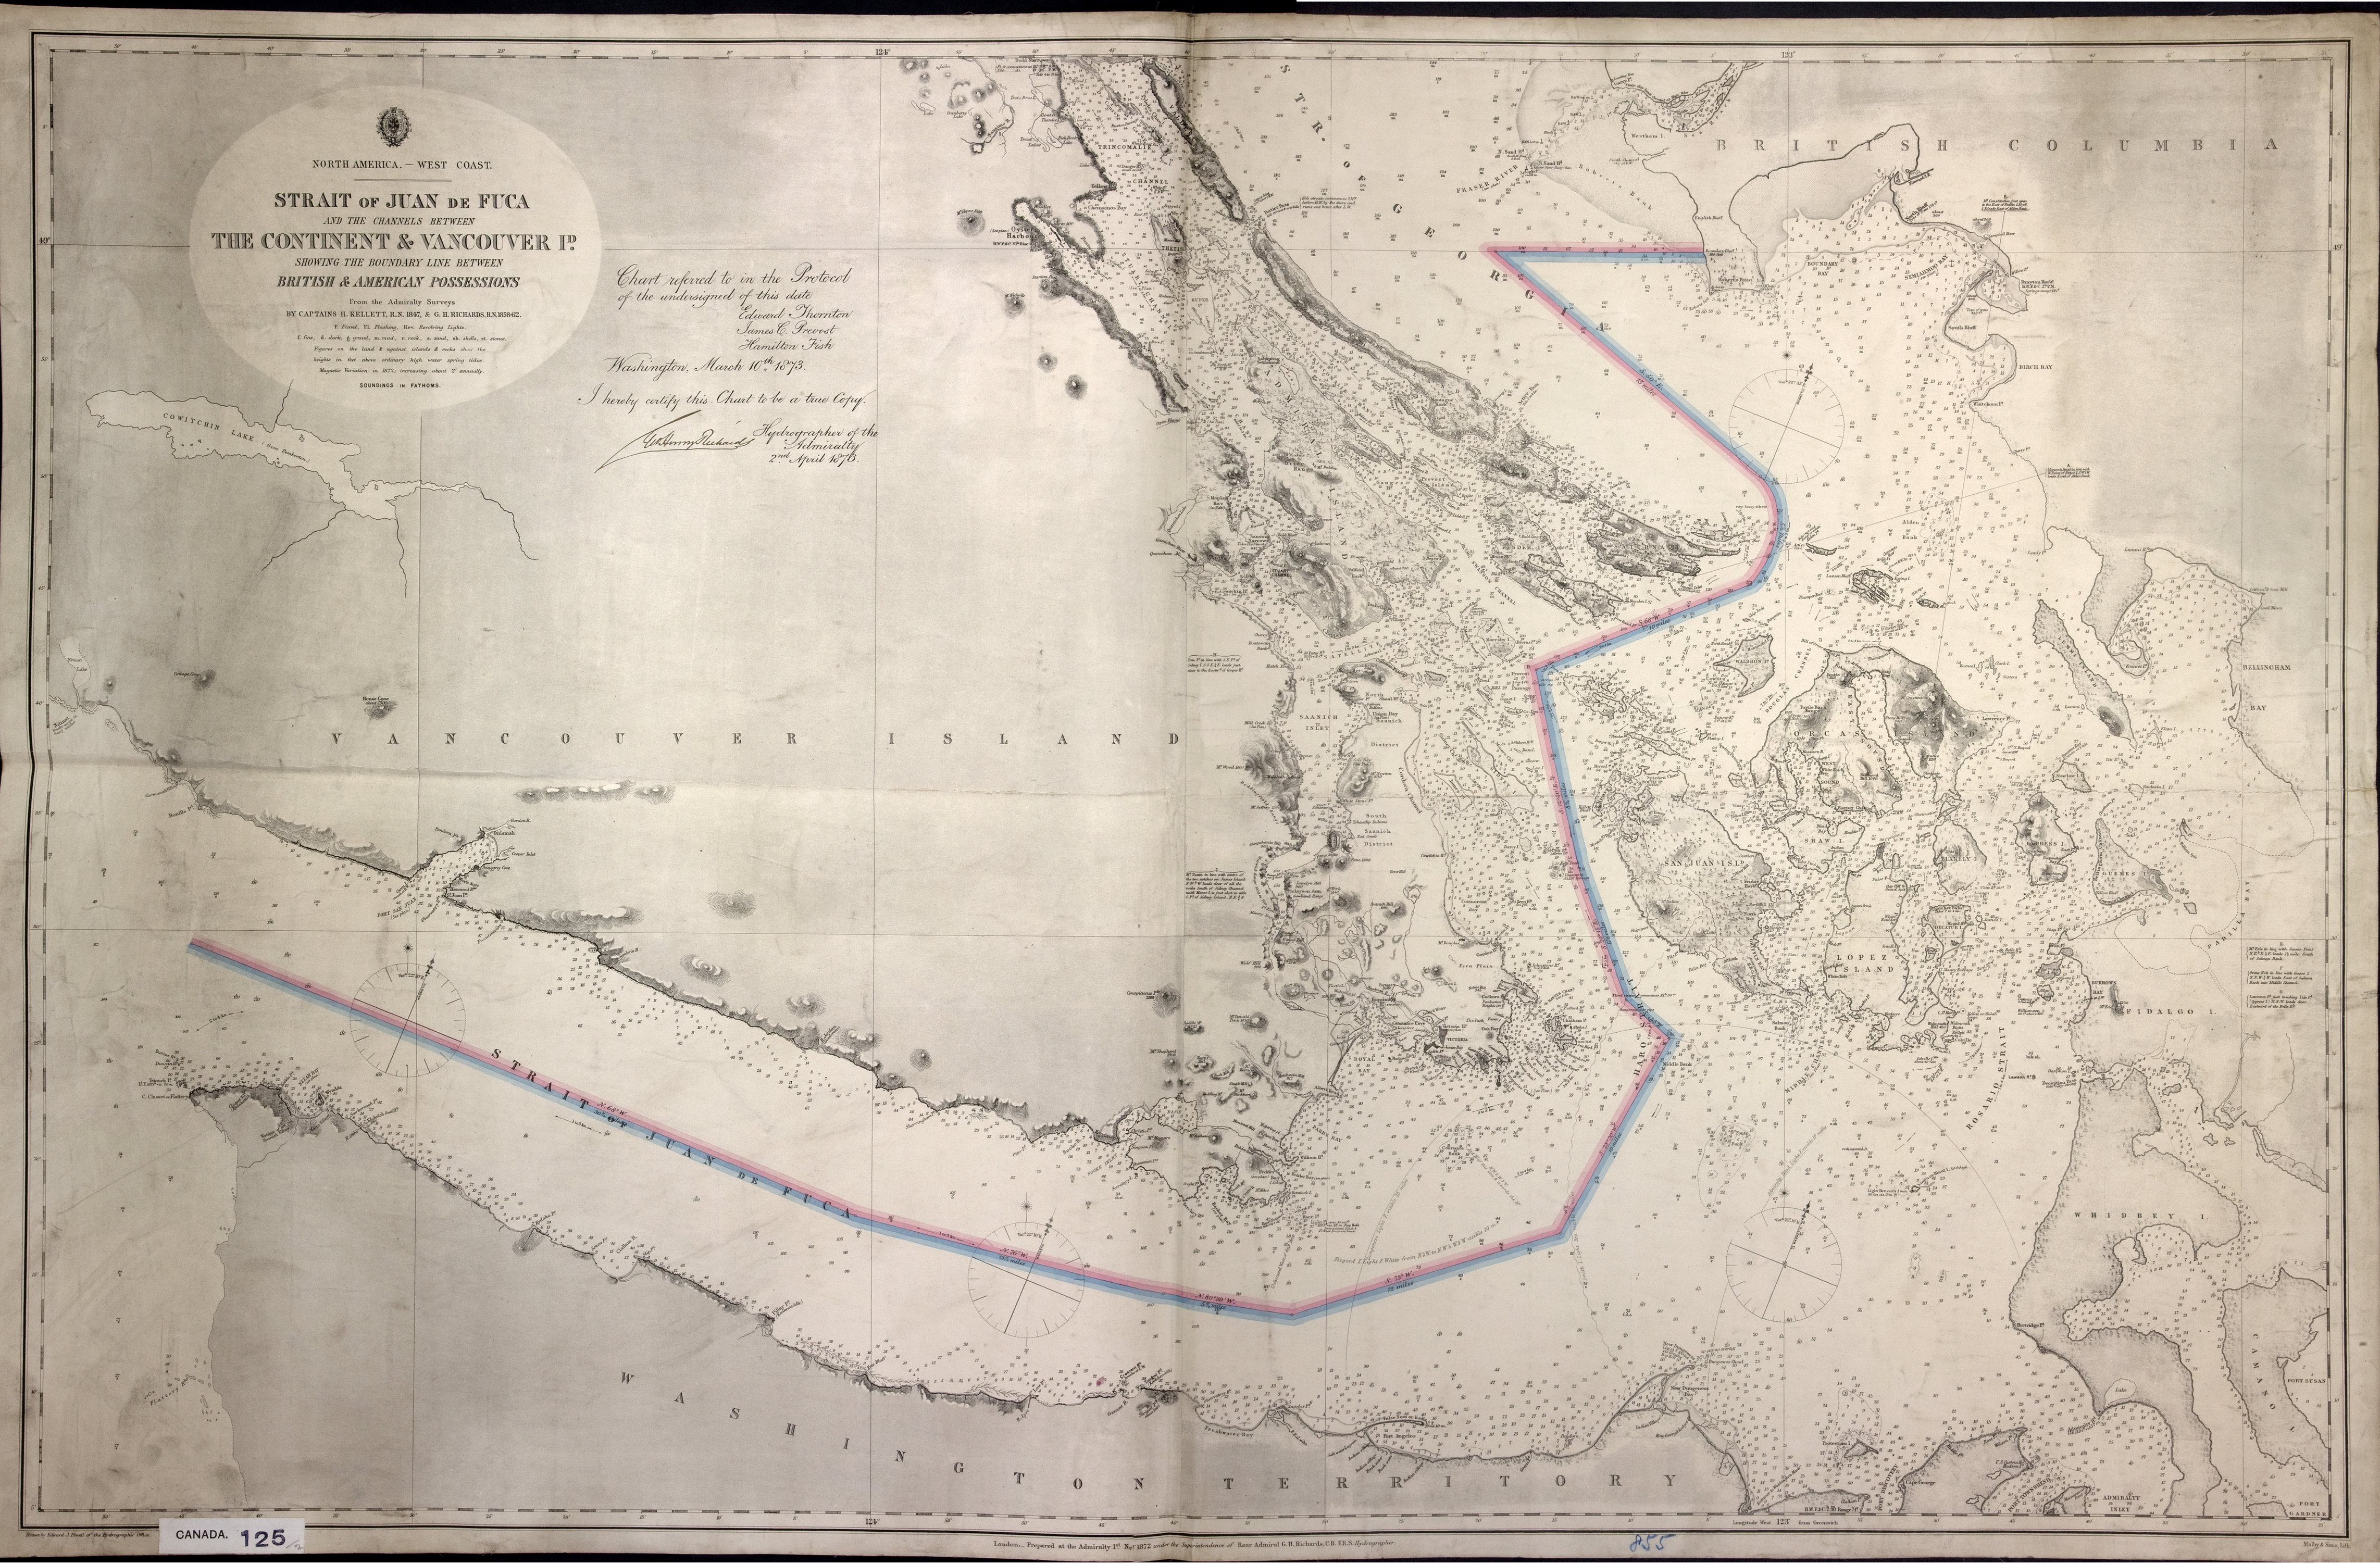 Strait of Juan de Fuca and the channels between the continent & Vancouver Id., showing the boundary line between British & American possessions.